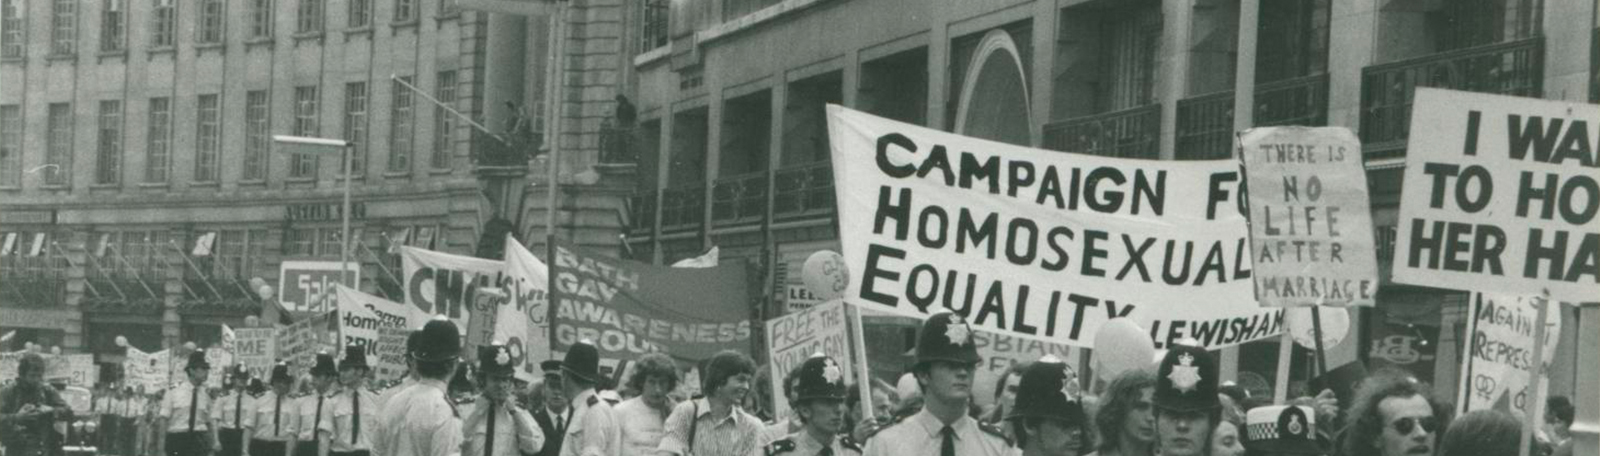 Gay Pride March, 1974